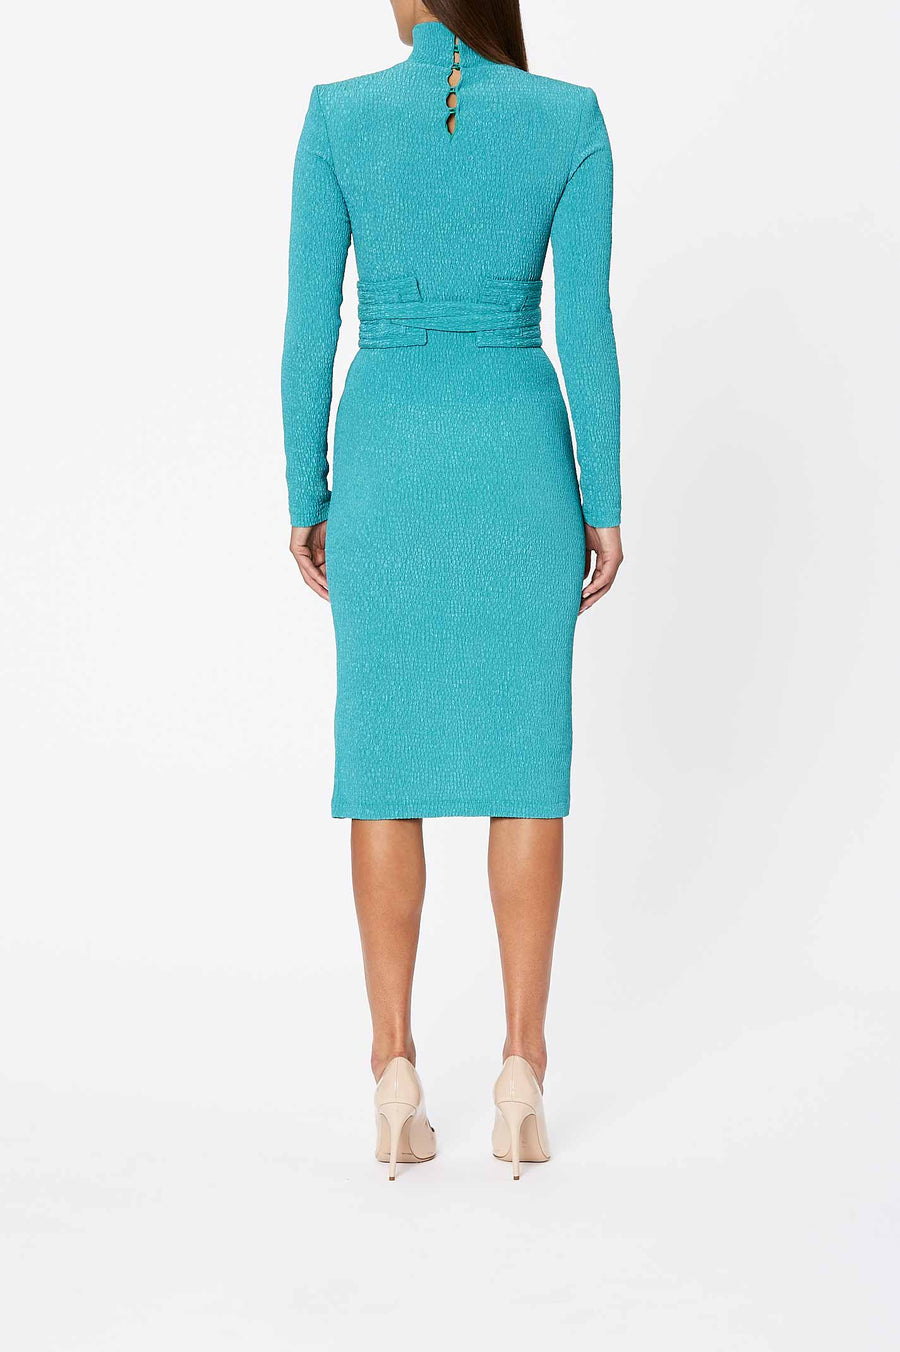 Stretch Reptile Dress, Turquoise Color, Slim Fit, Knee Length, Belt Included